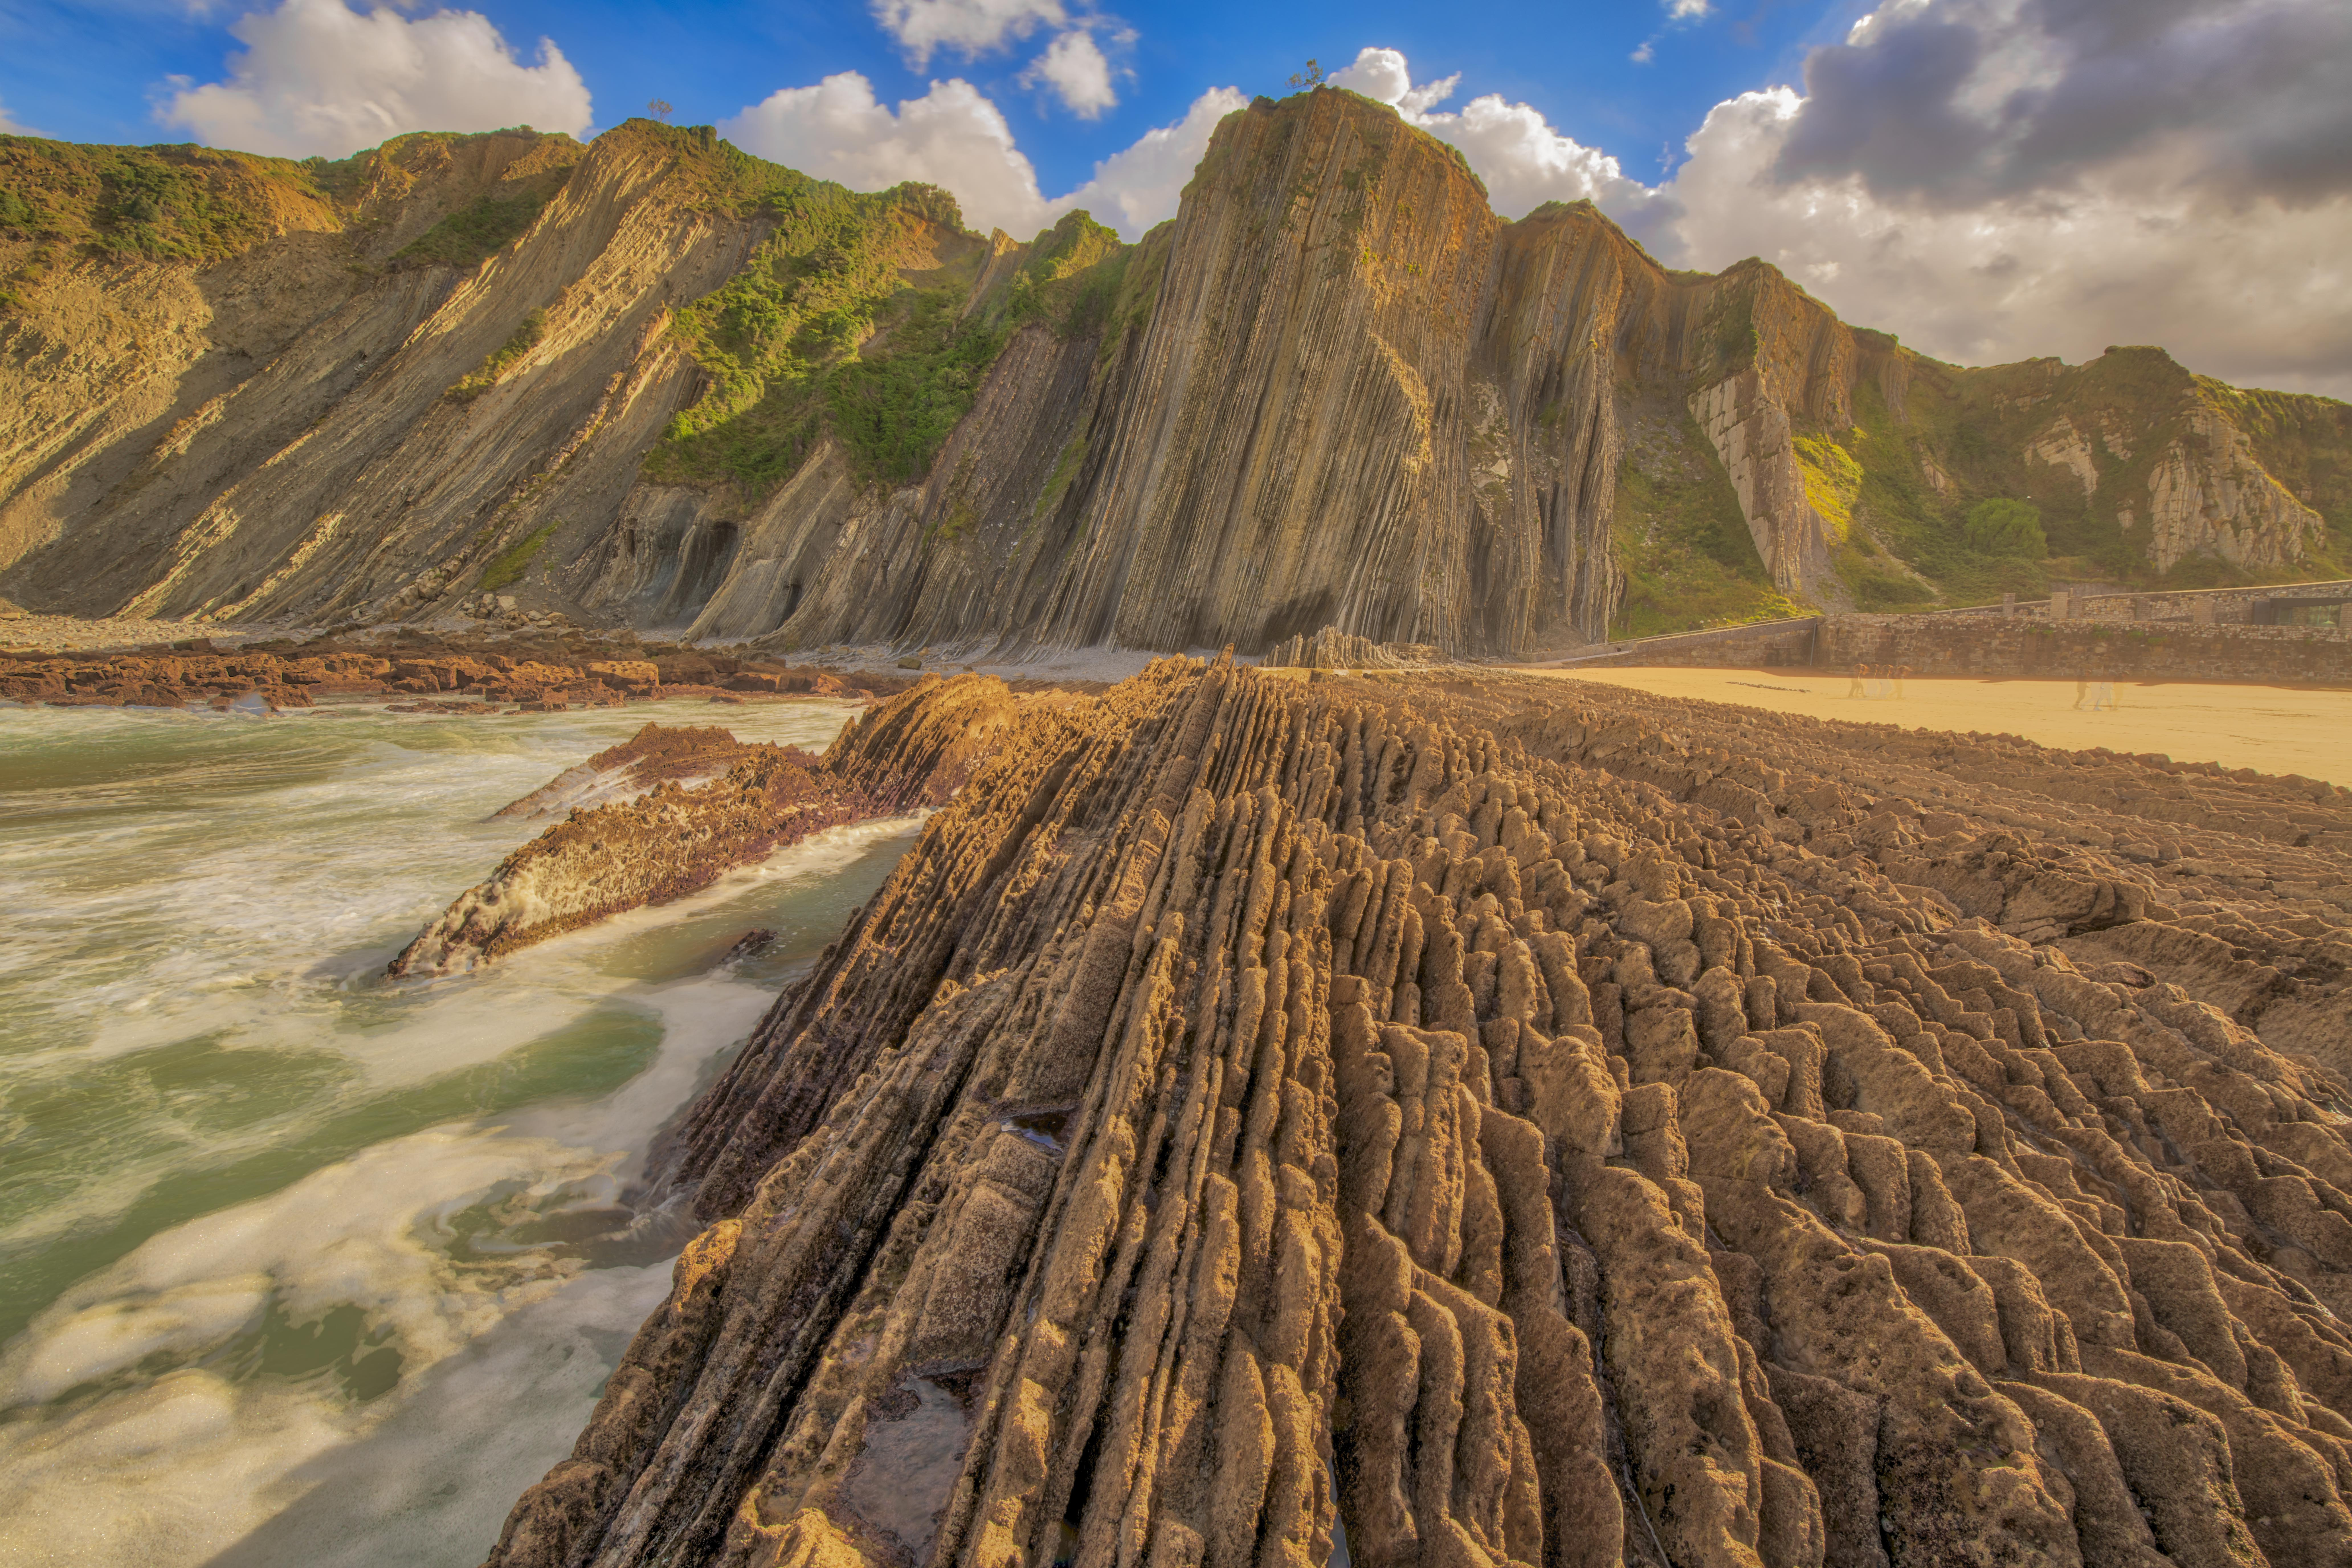 Flysch formations, Zumaia Beach, Spain, Photographed by Tom Till